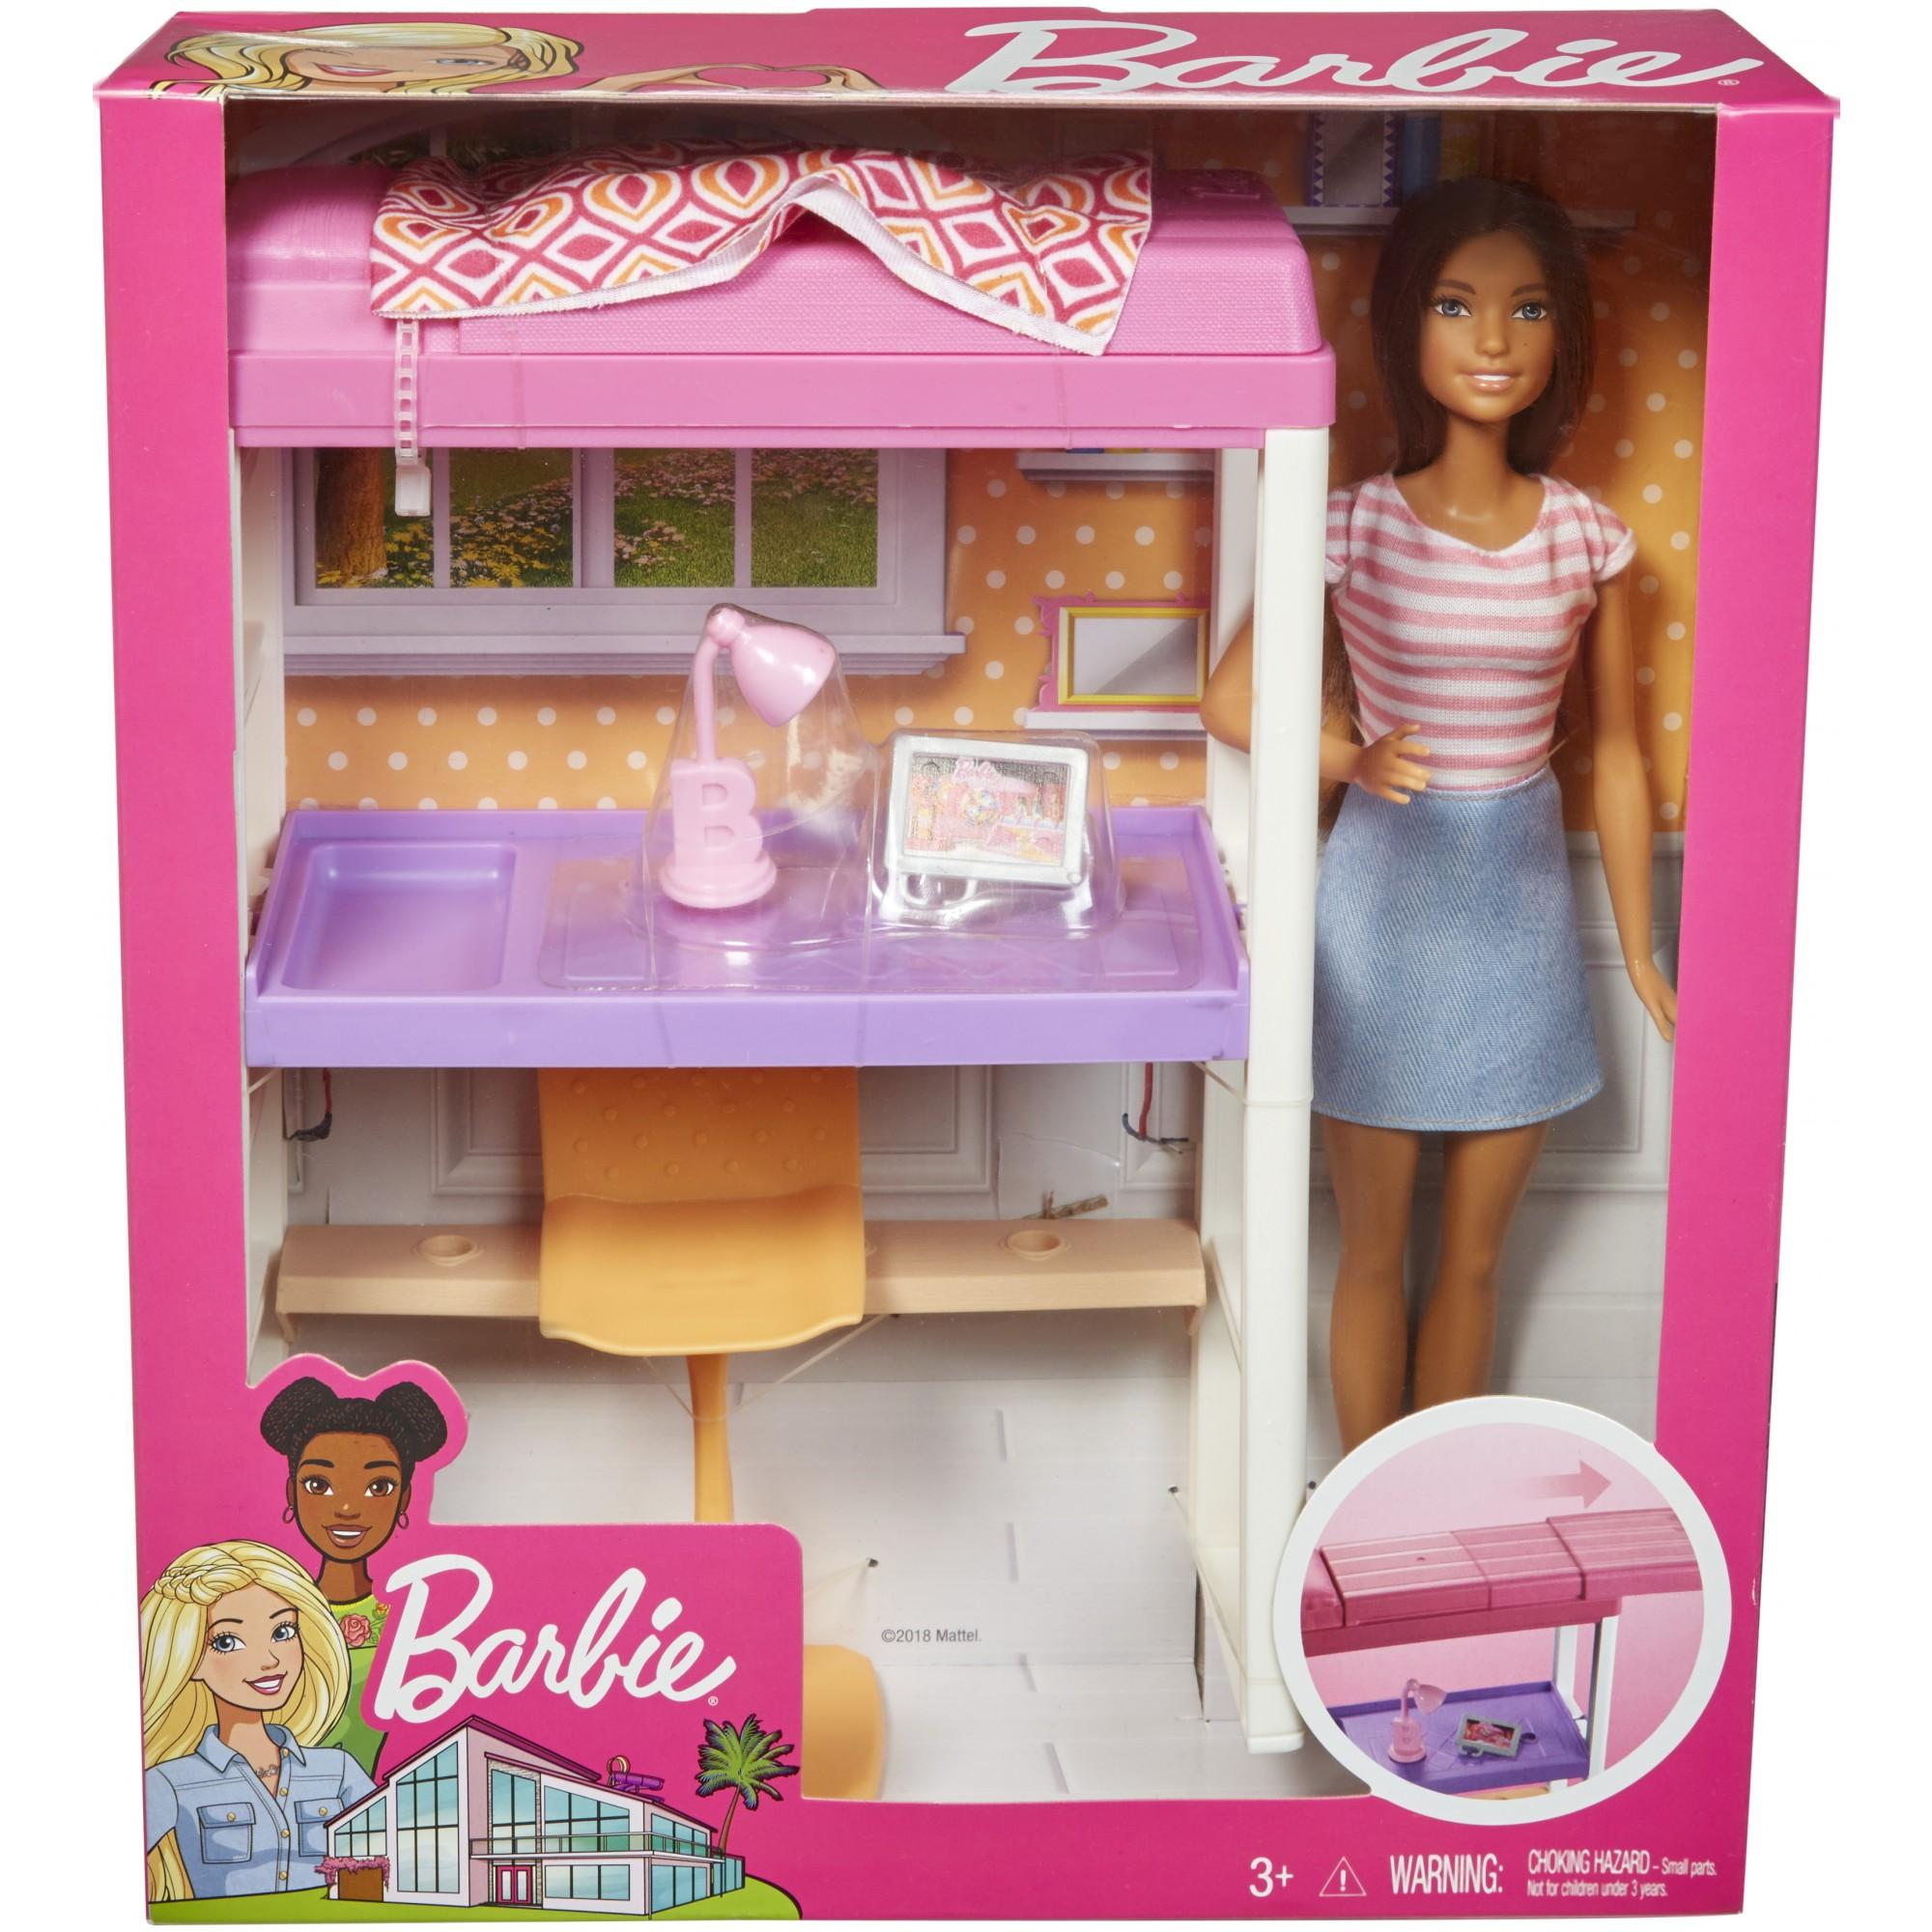 barbie doll size bedding set for dolls